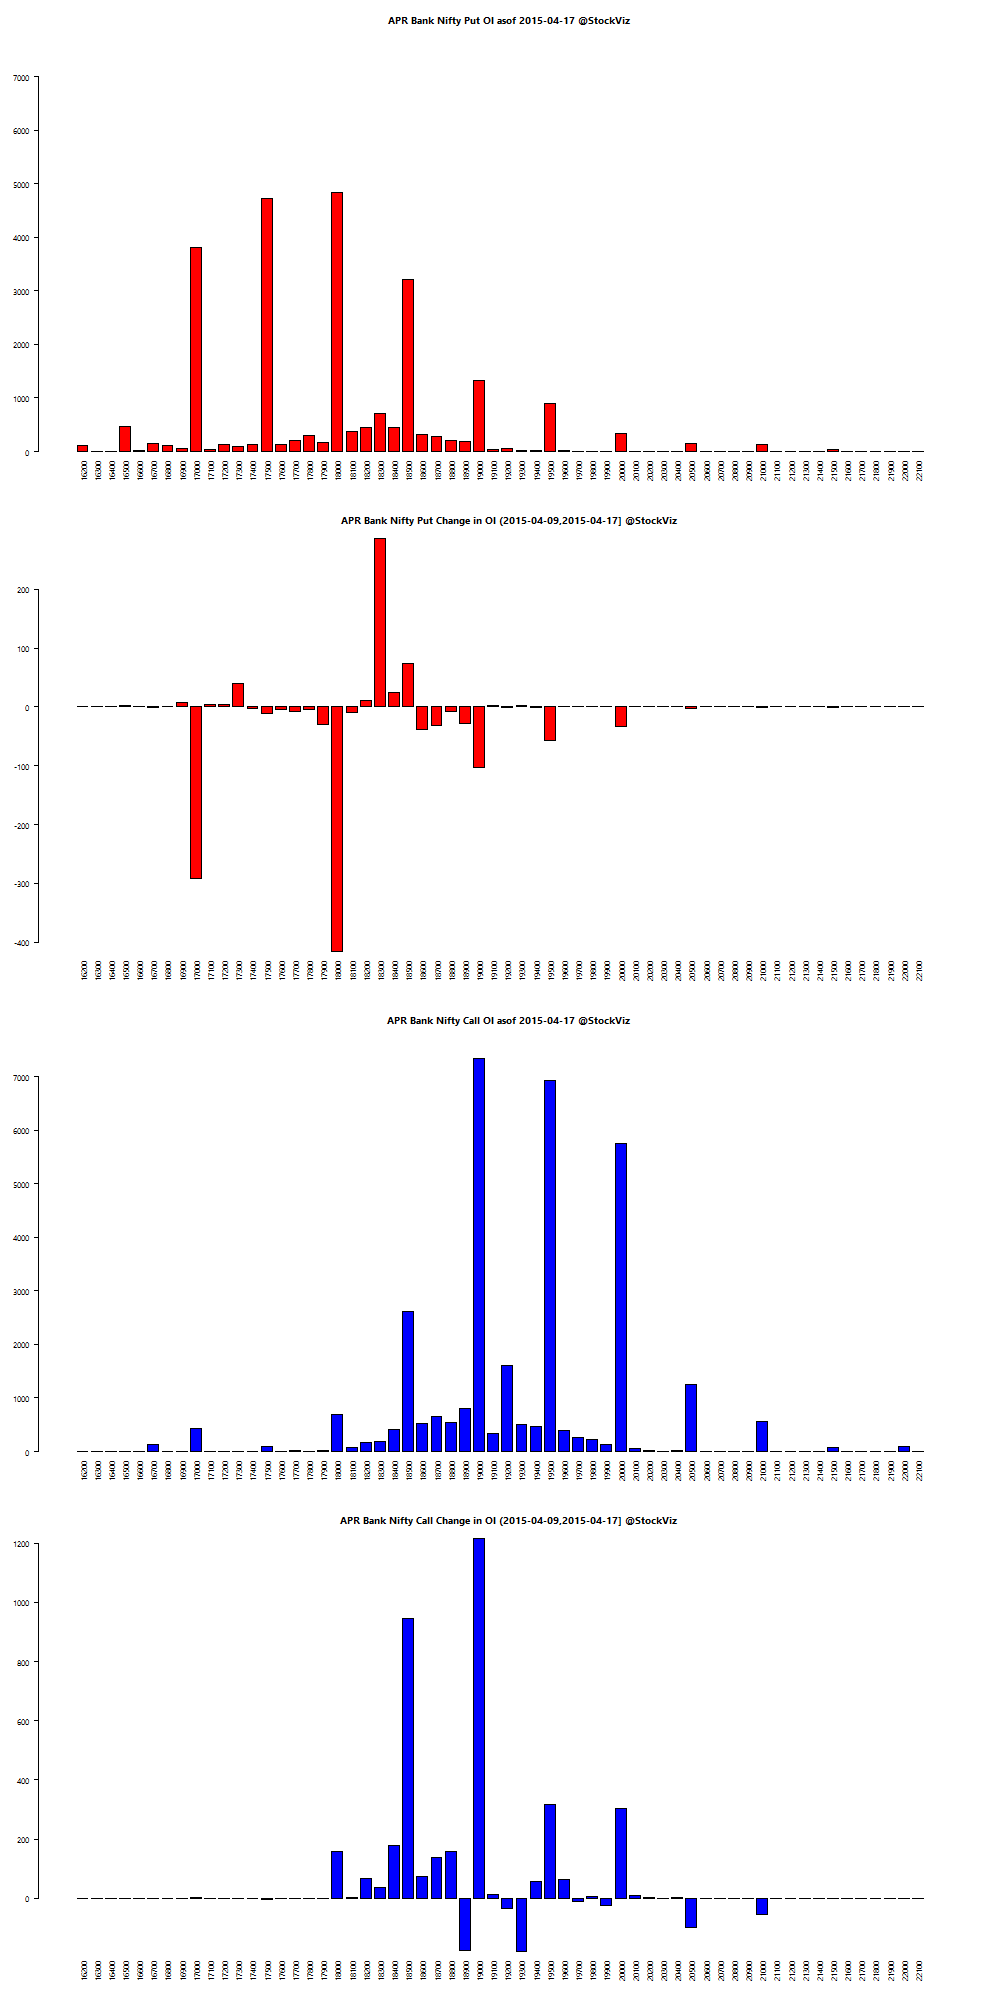 APR BANKNIFTY OI chart